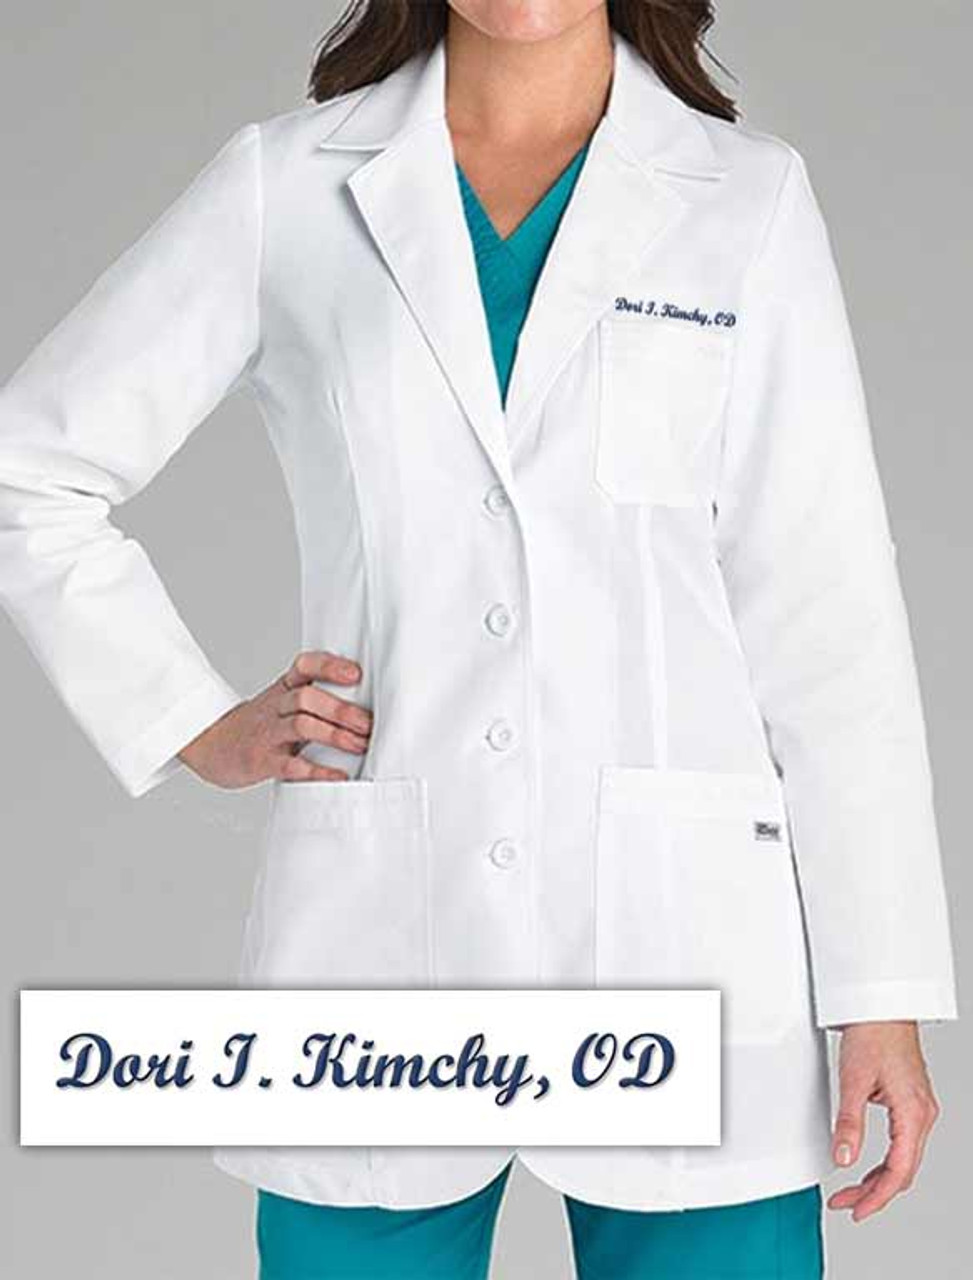 DORI T. KIMCHY Embroidered Labcoat